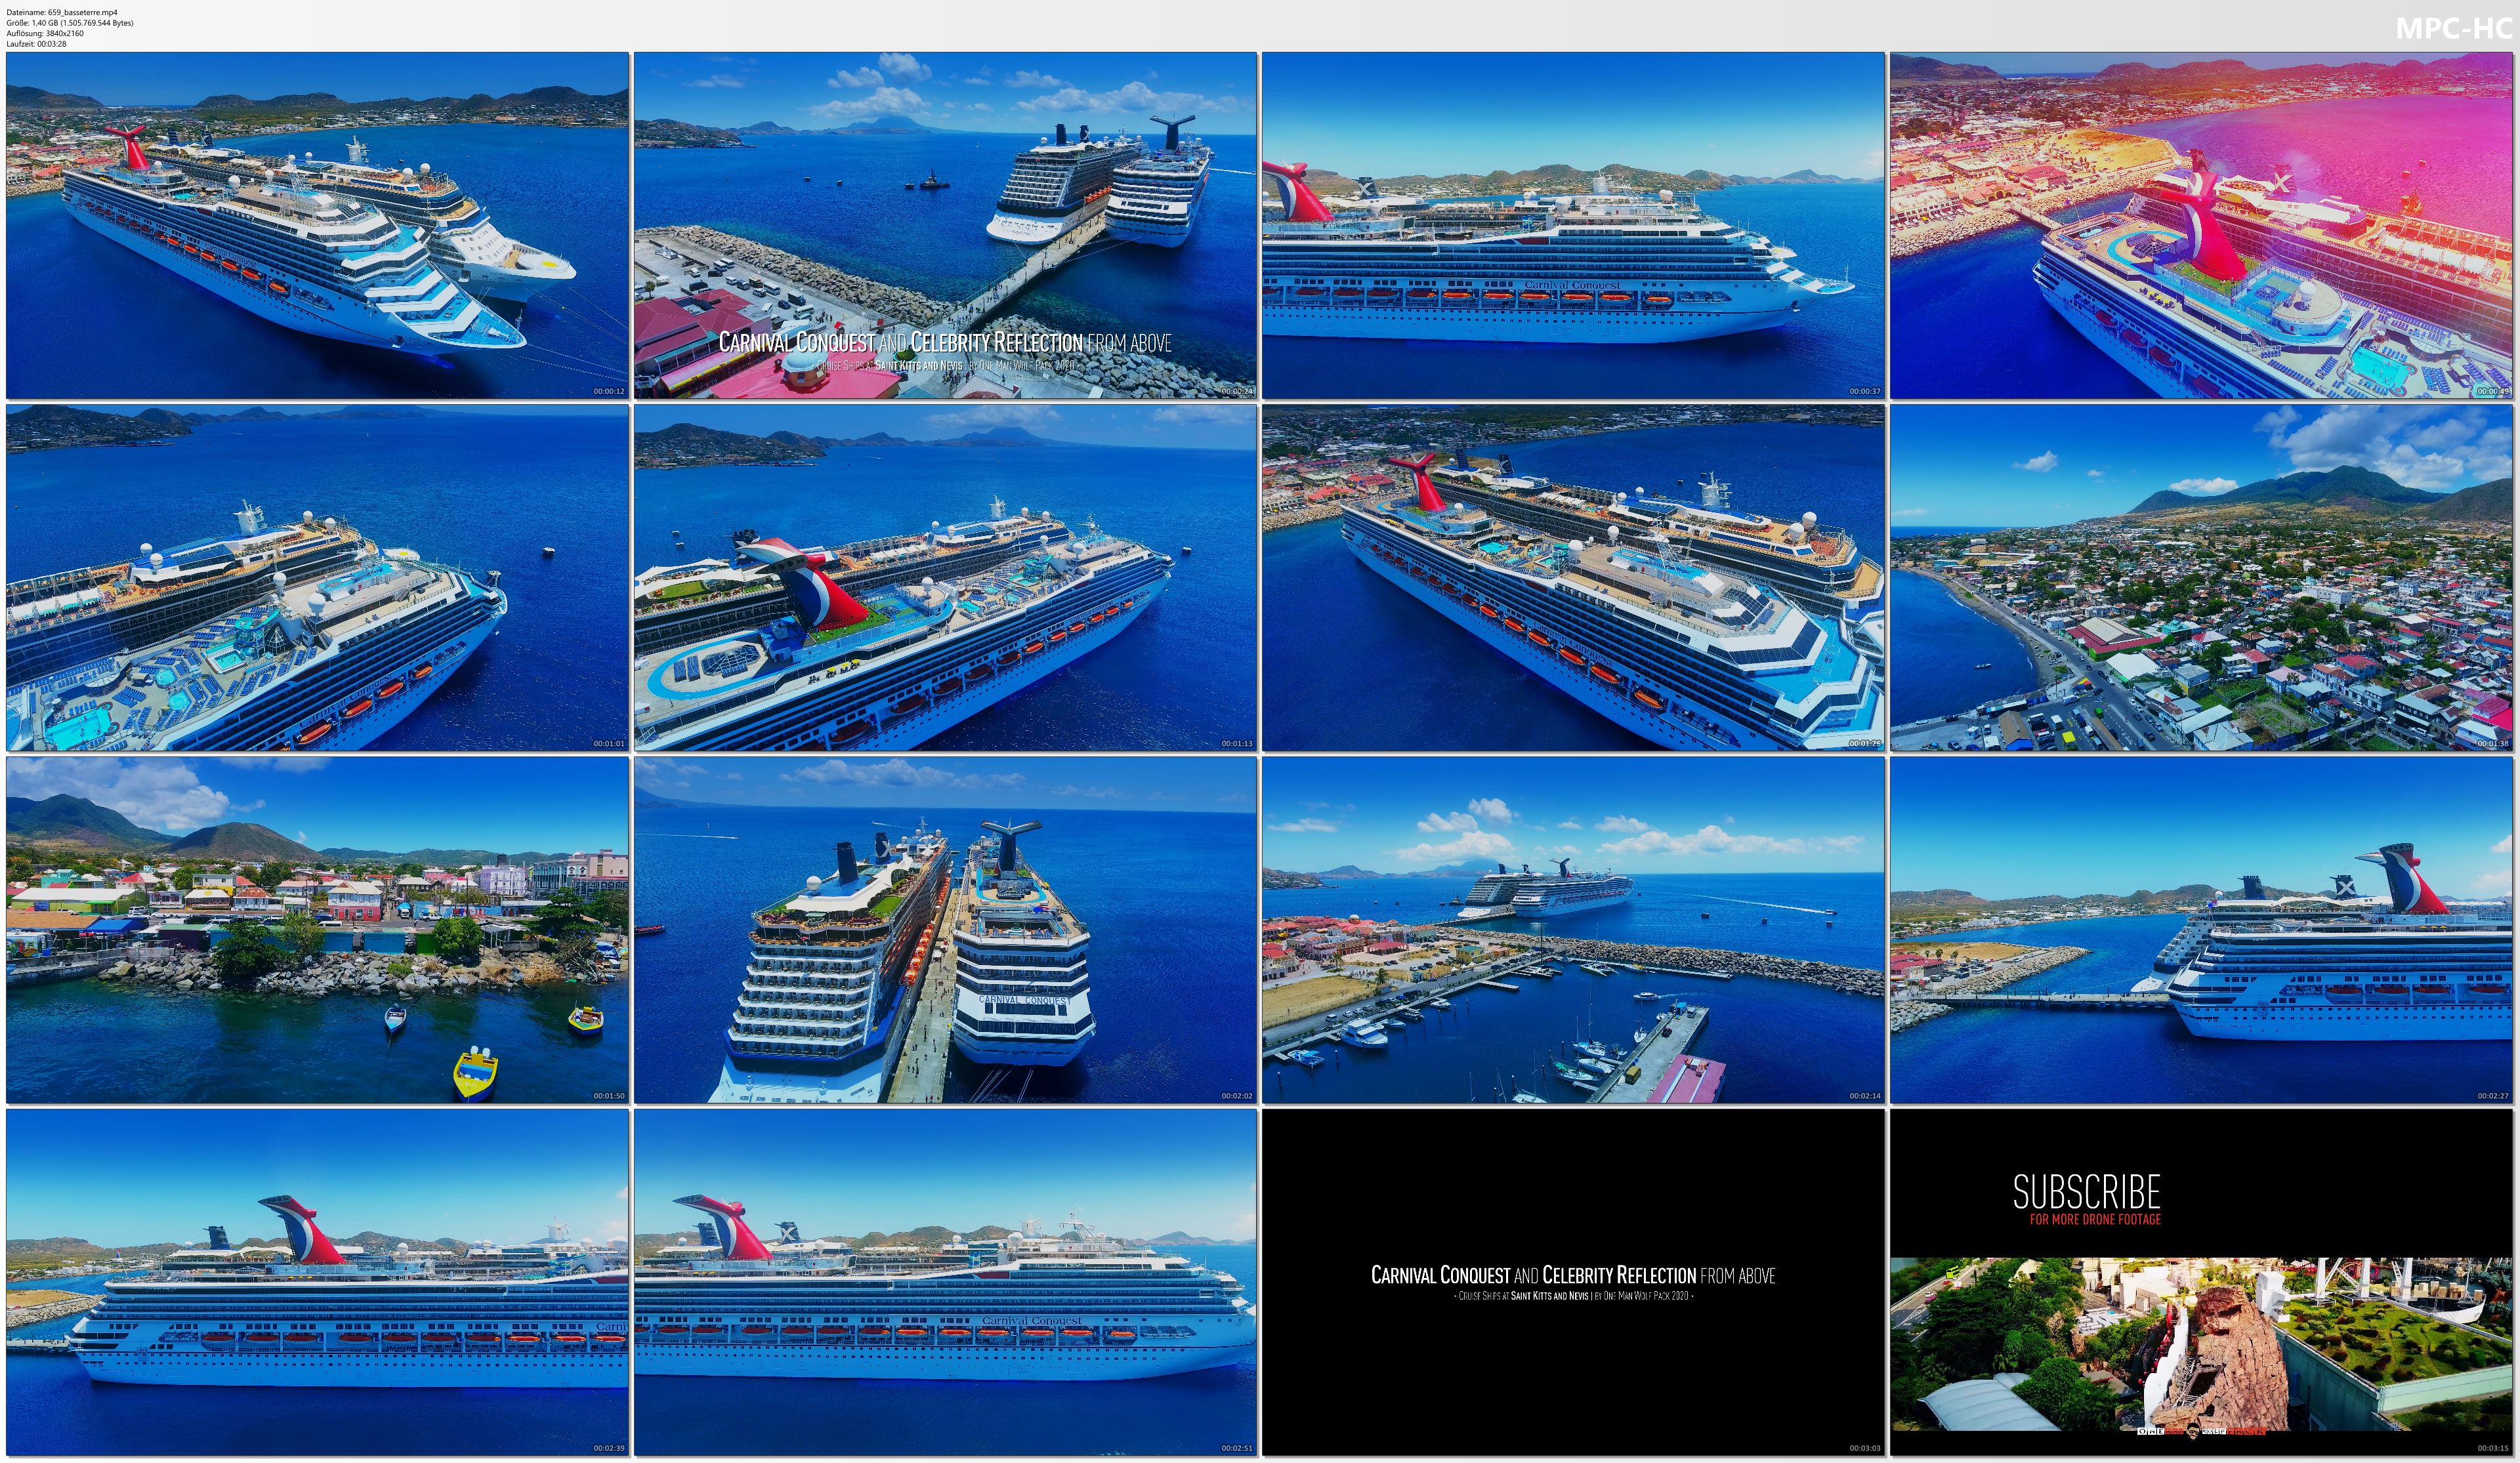 Drone Pictures from Video 【4K】CRUISE SHIPS from Above | Carnival Conquest & Celebrity Reflection | St. Kitts Cinematic Aerial™